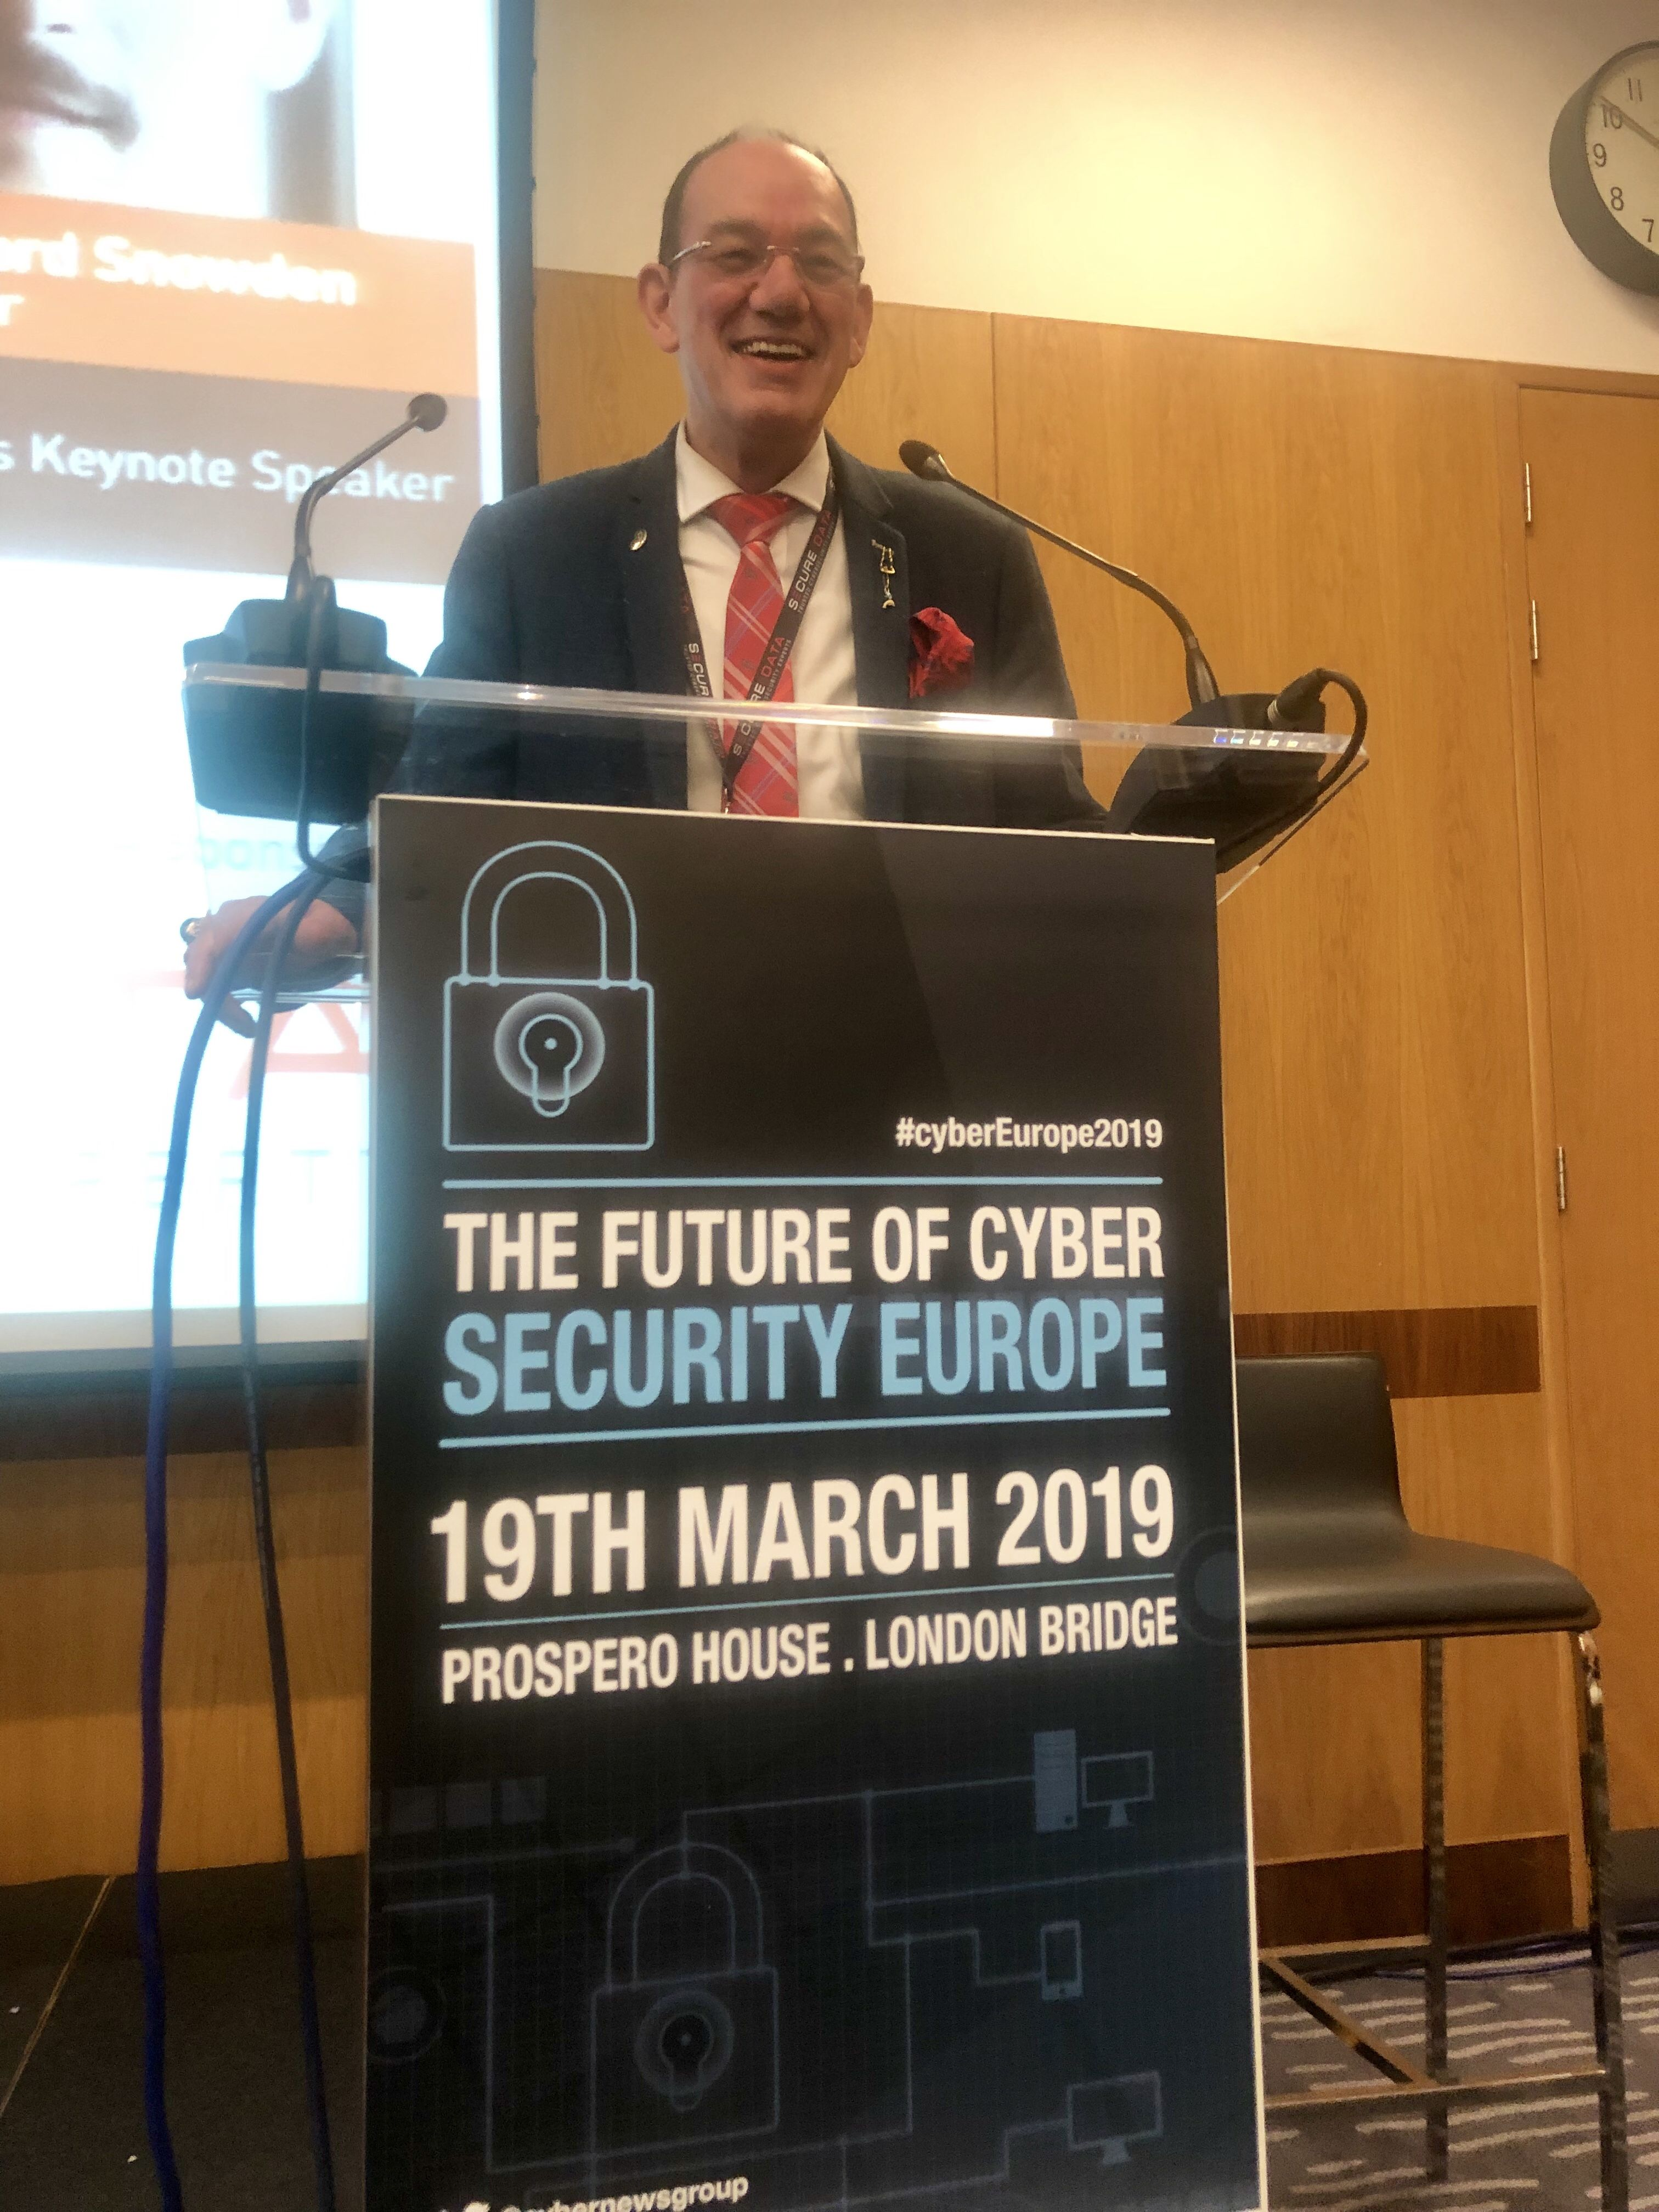 The Future of Cyber Security Europe (With images